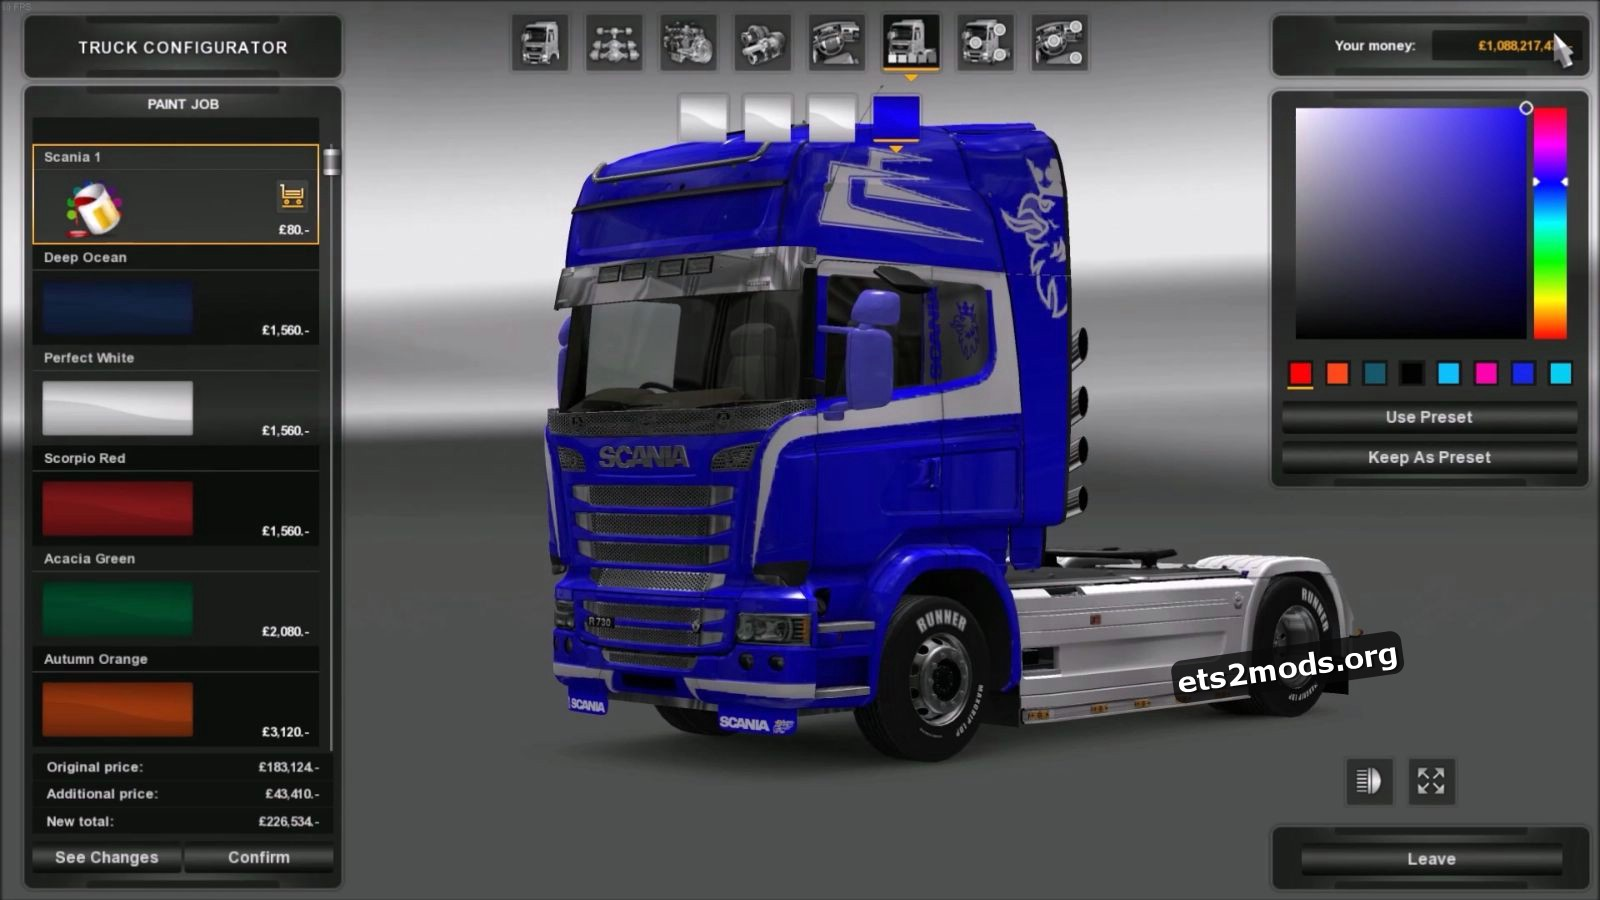 Costom PaintJob for Scania Streamline